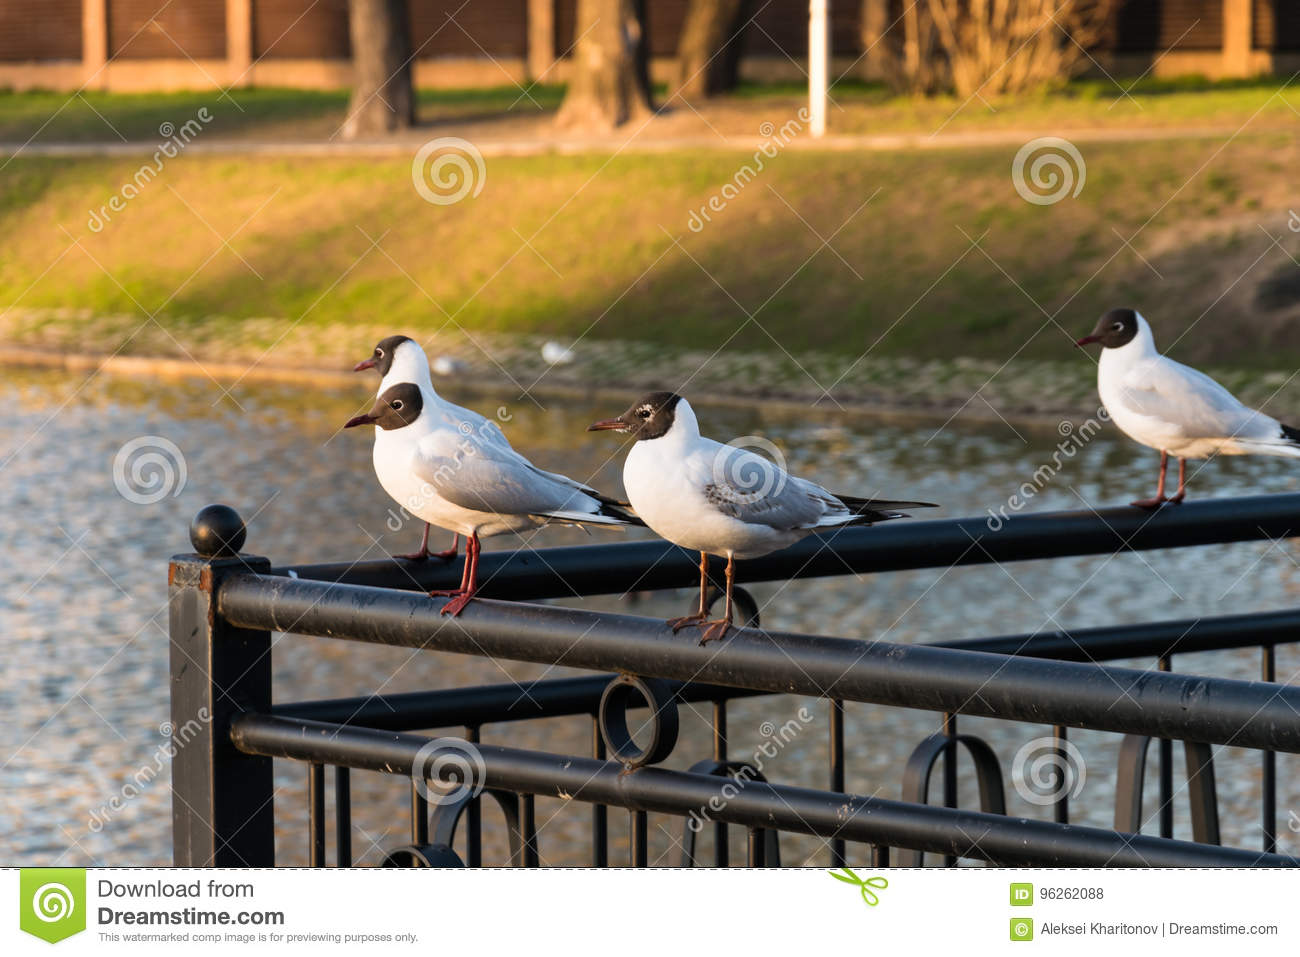 Black-headed gulls are sitting on the railing